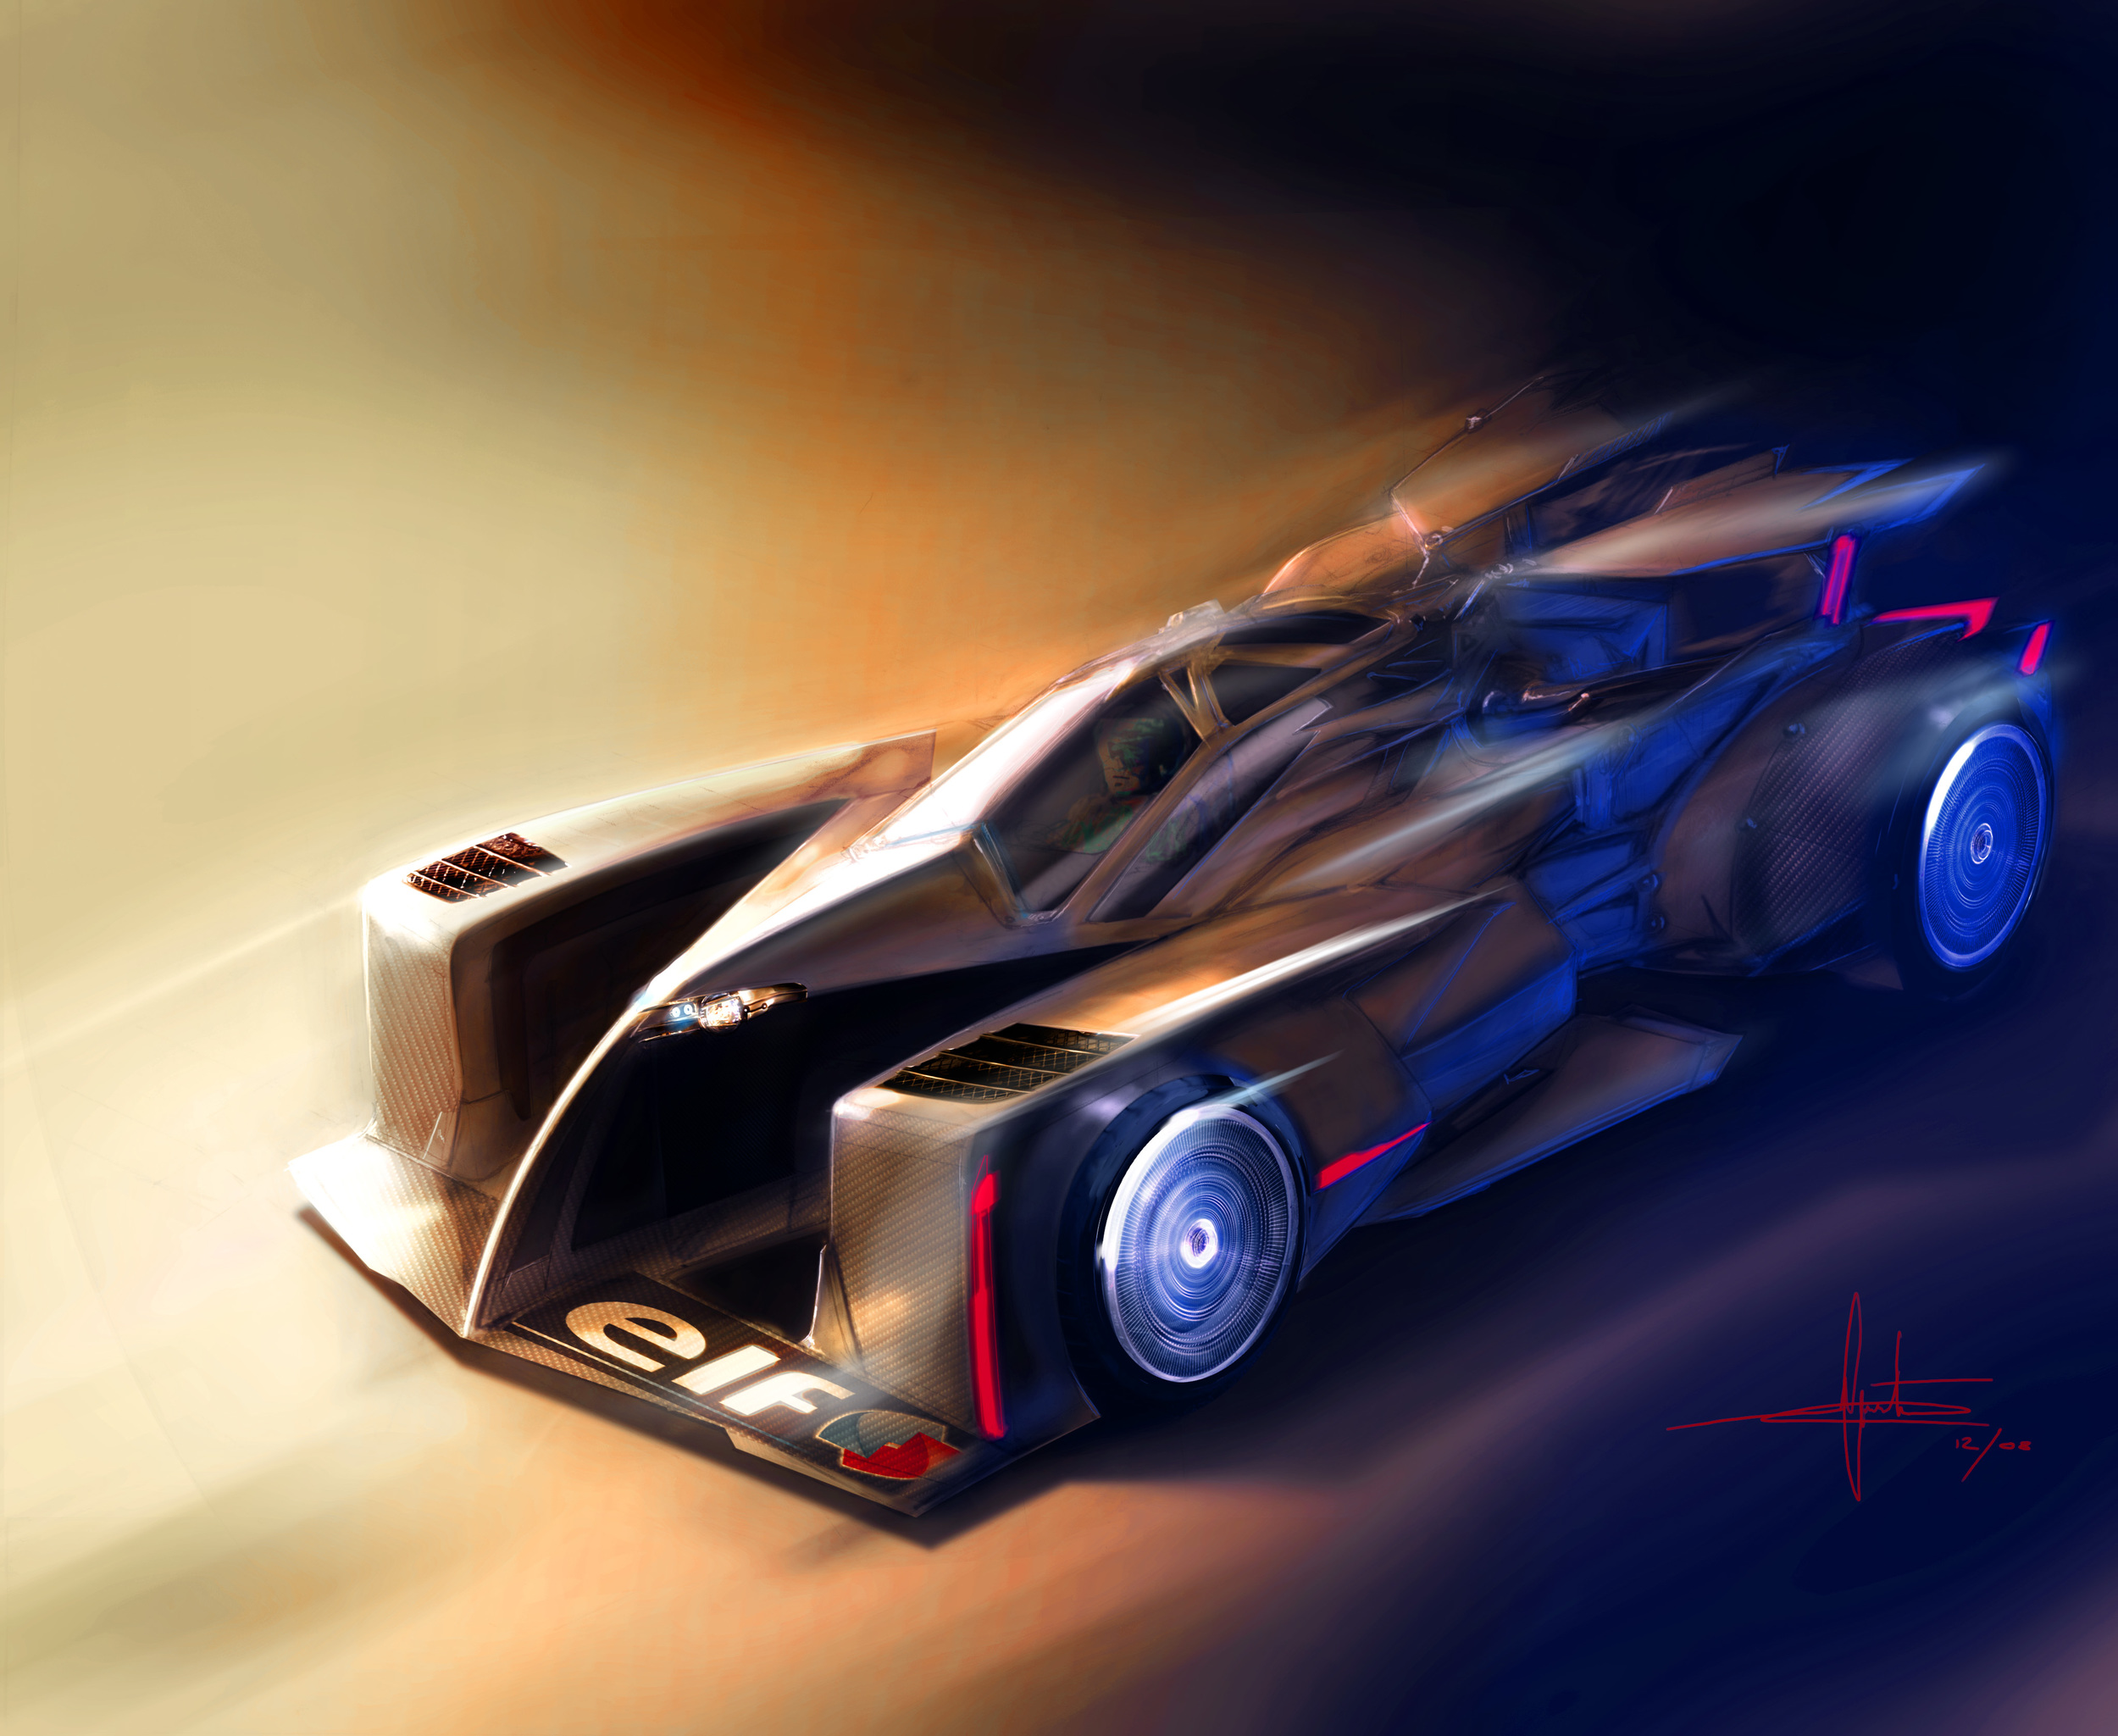 group C futuristic race car painting.